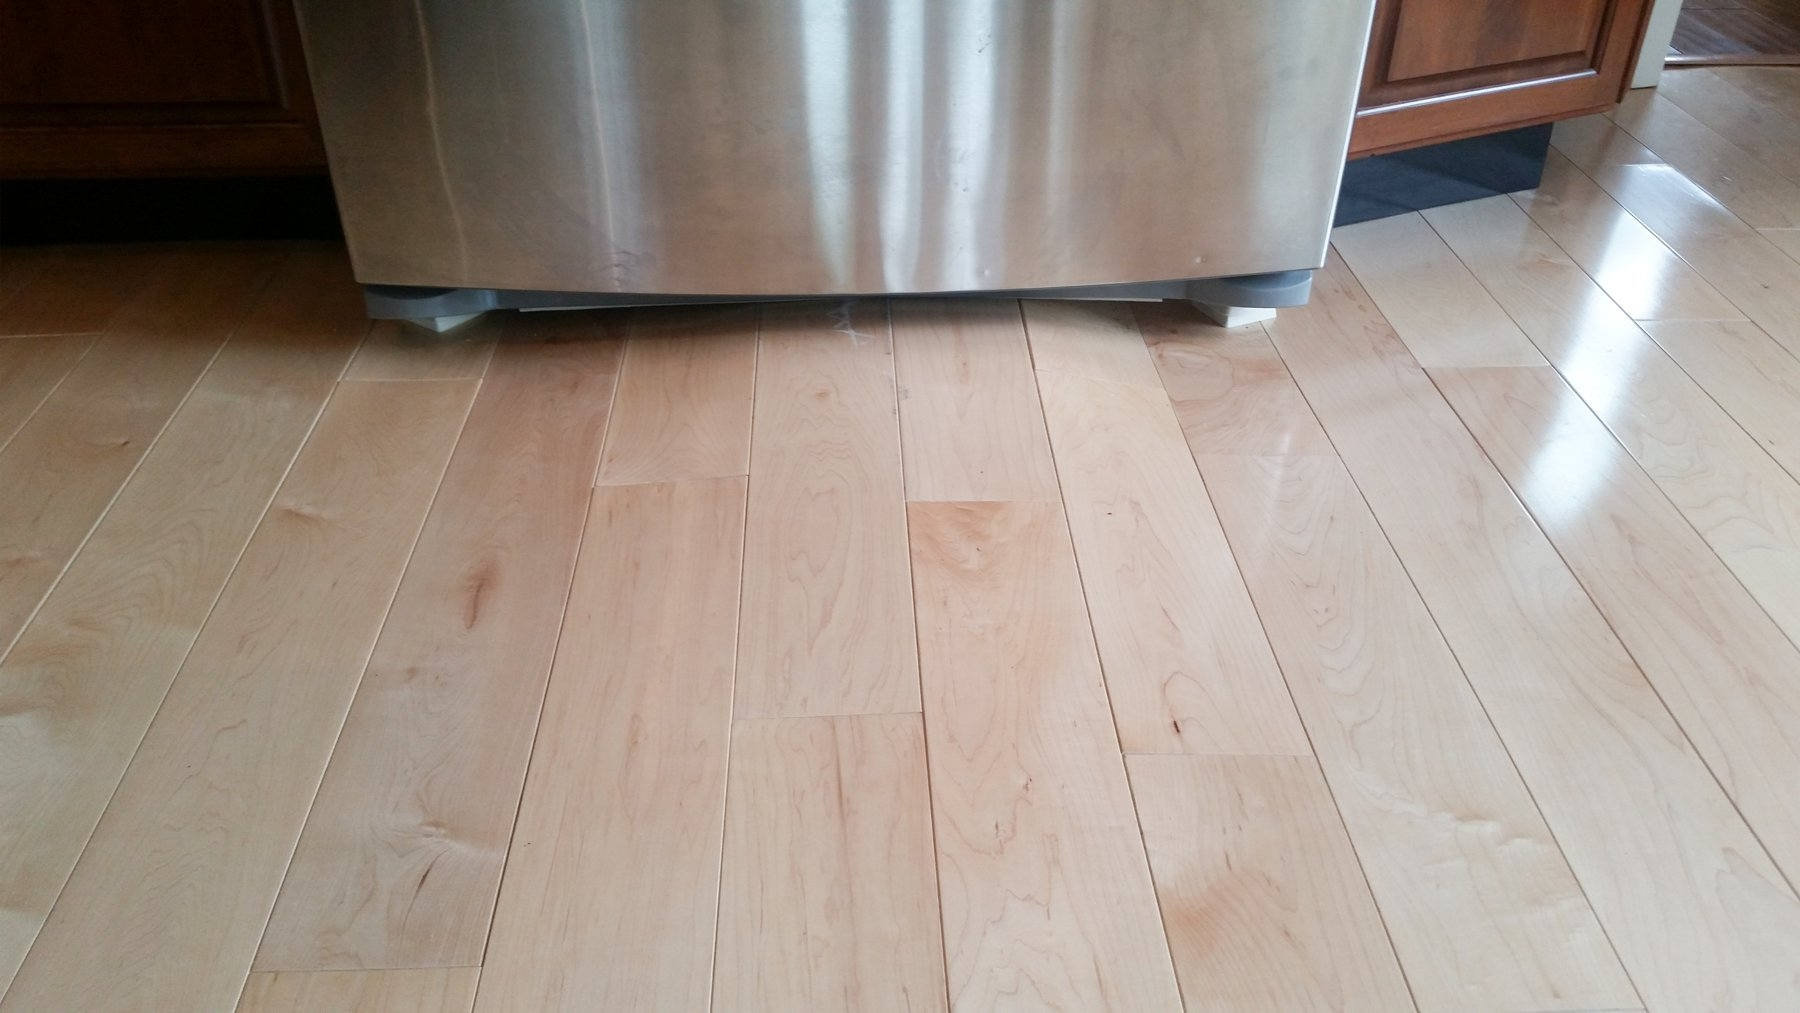 Signs Of Water Damage To Wood Floors